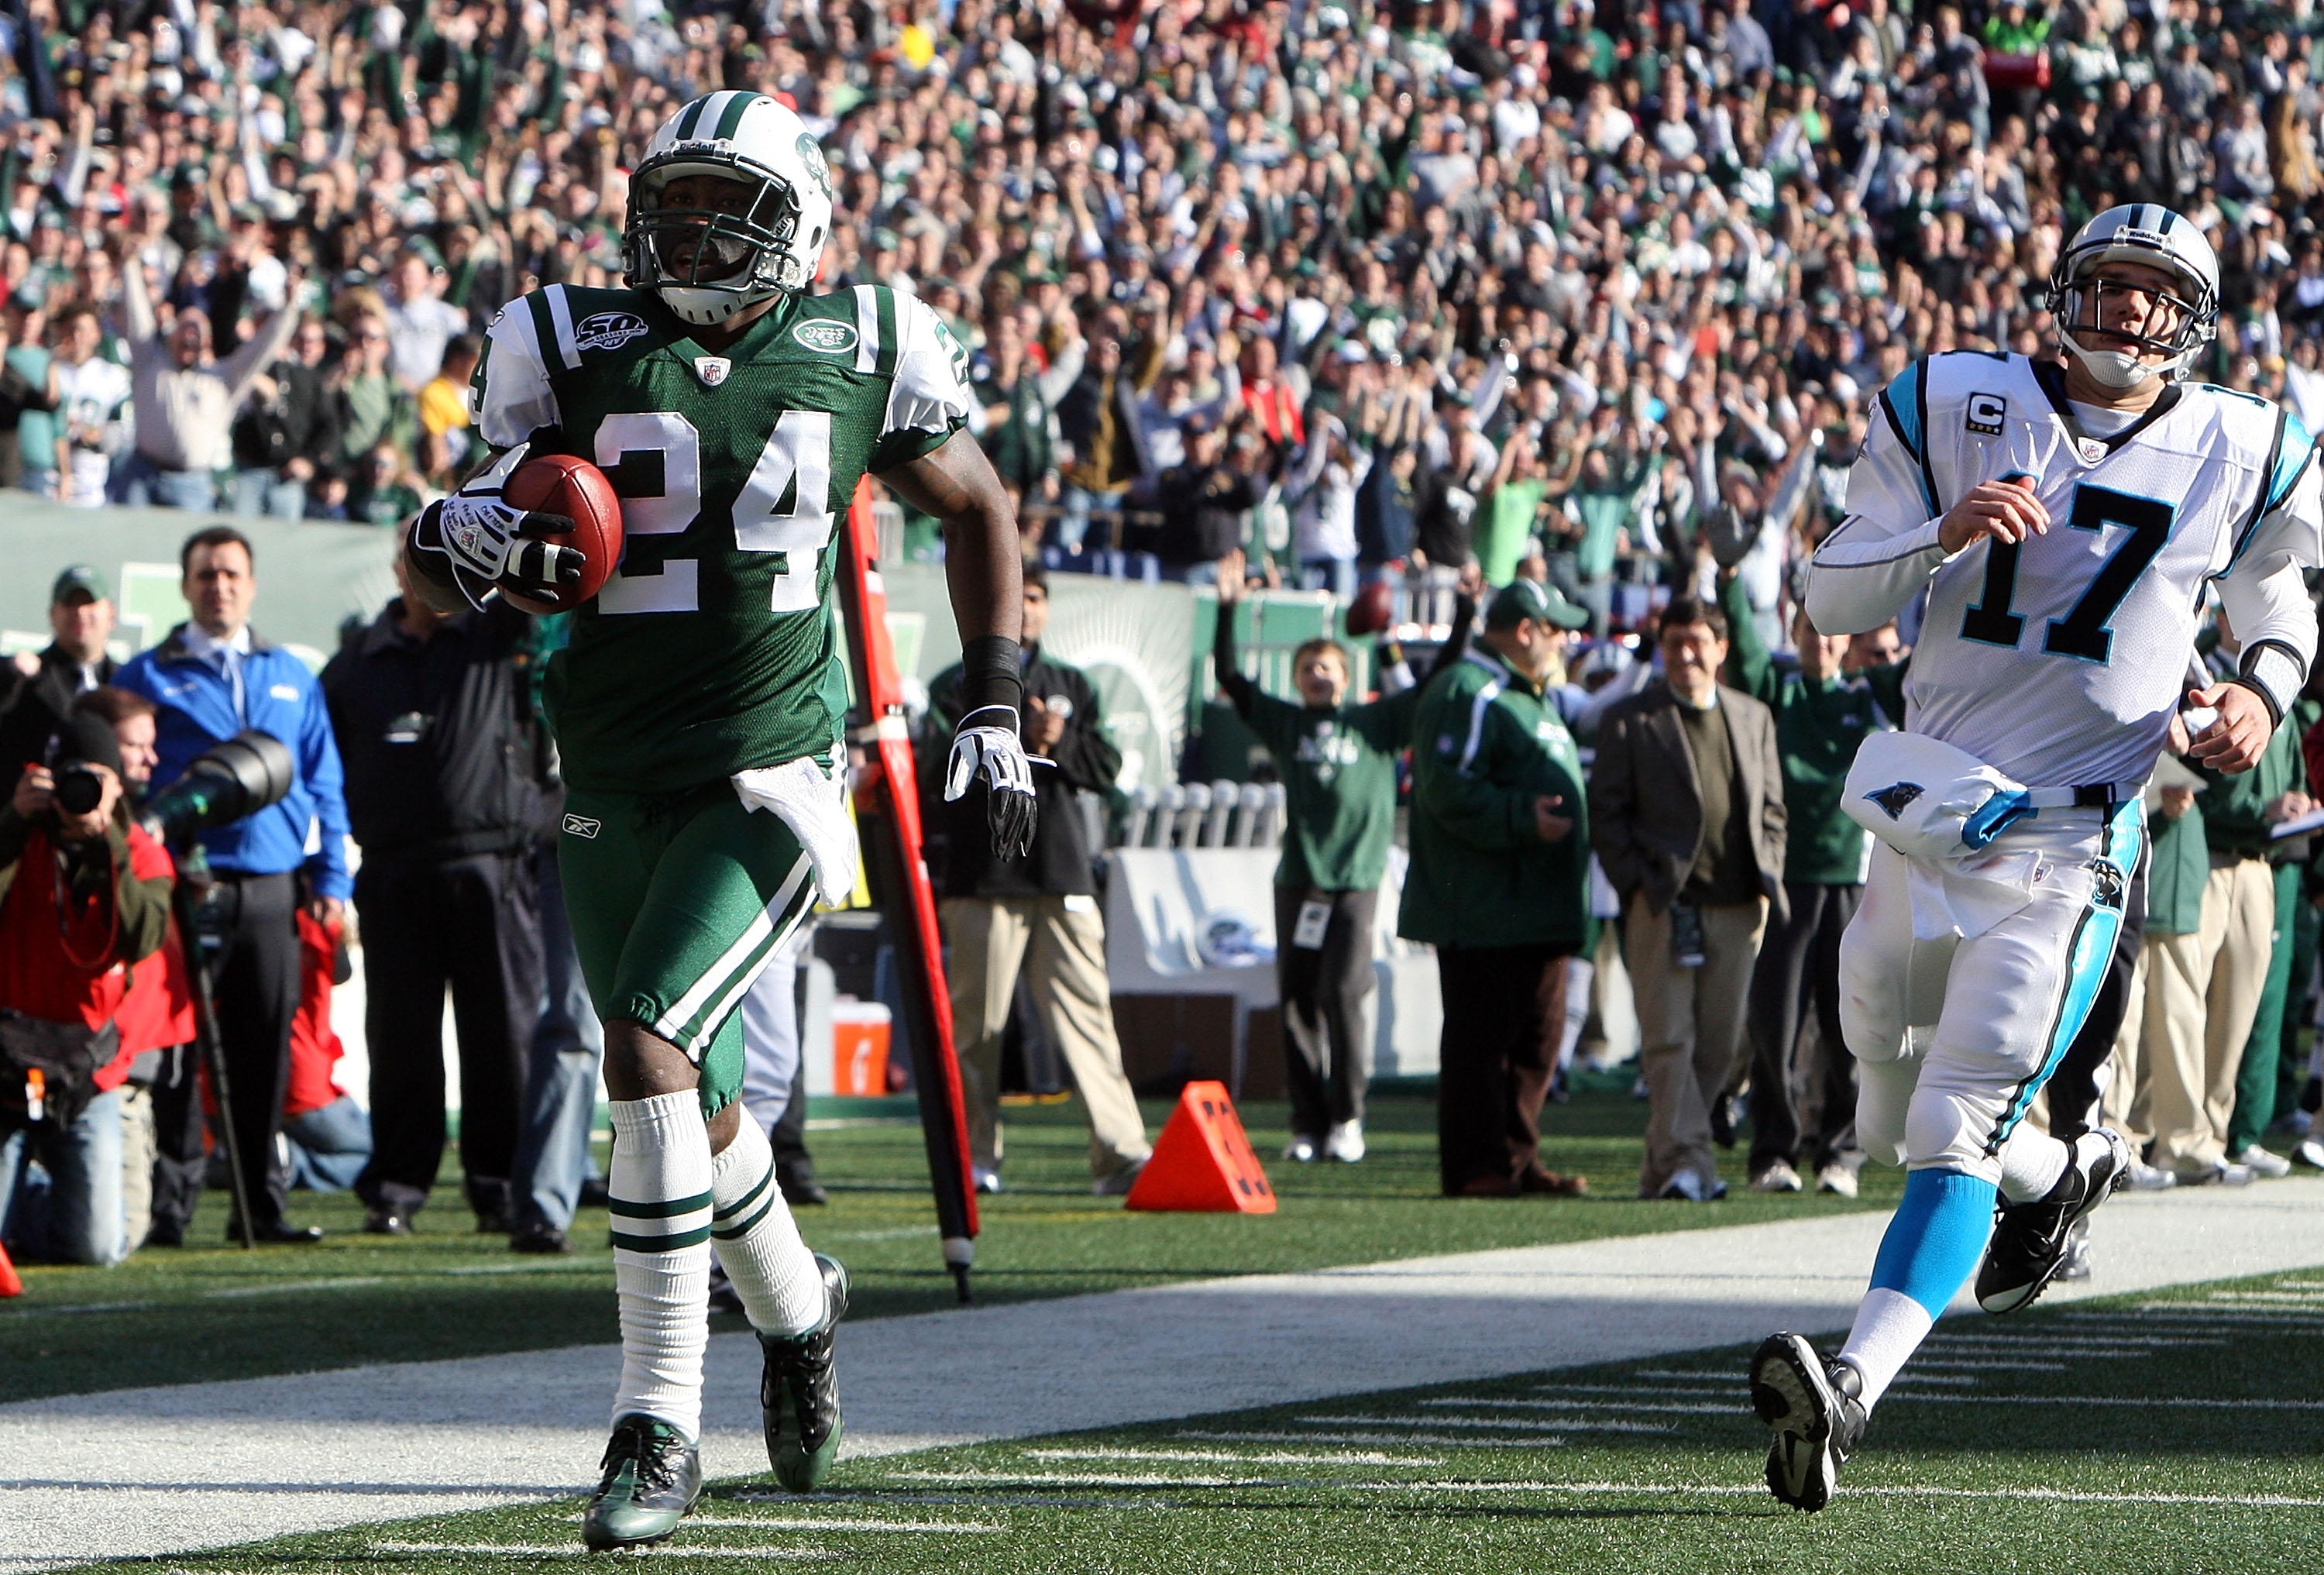 New York Jets cornerback Darrelle Revis had a season for the ages in 2009 -- and still somehow didn't win Defensive Player of the Year.